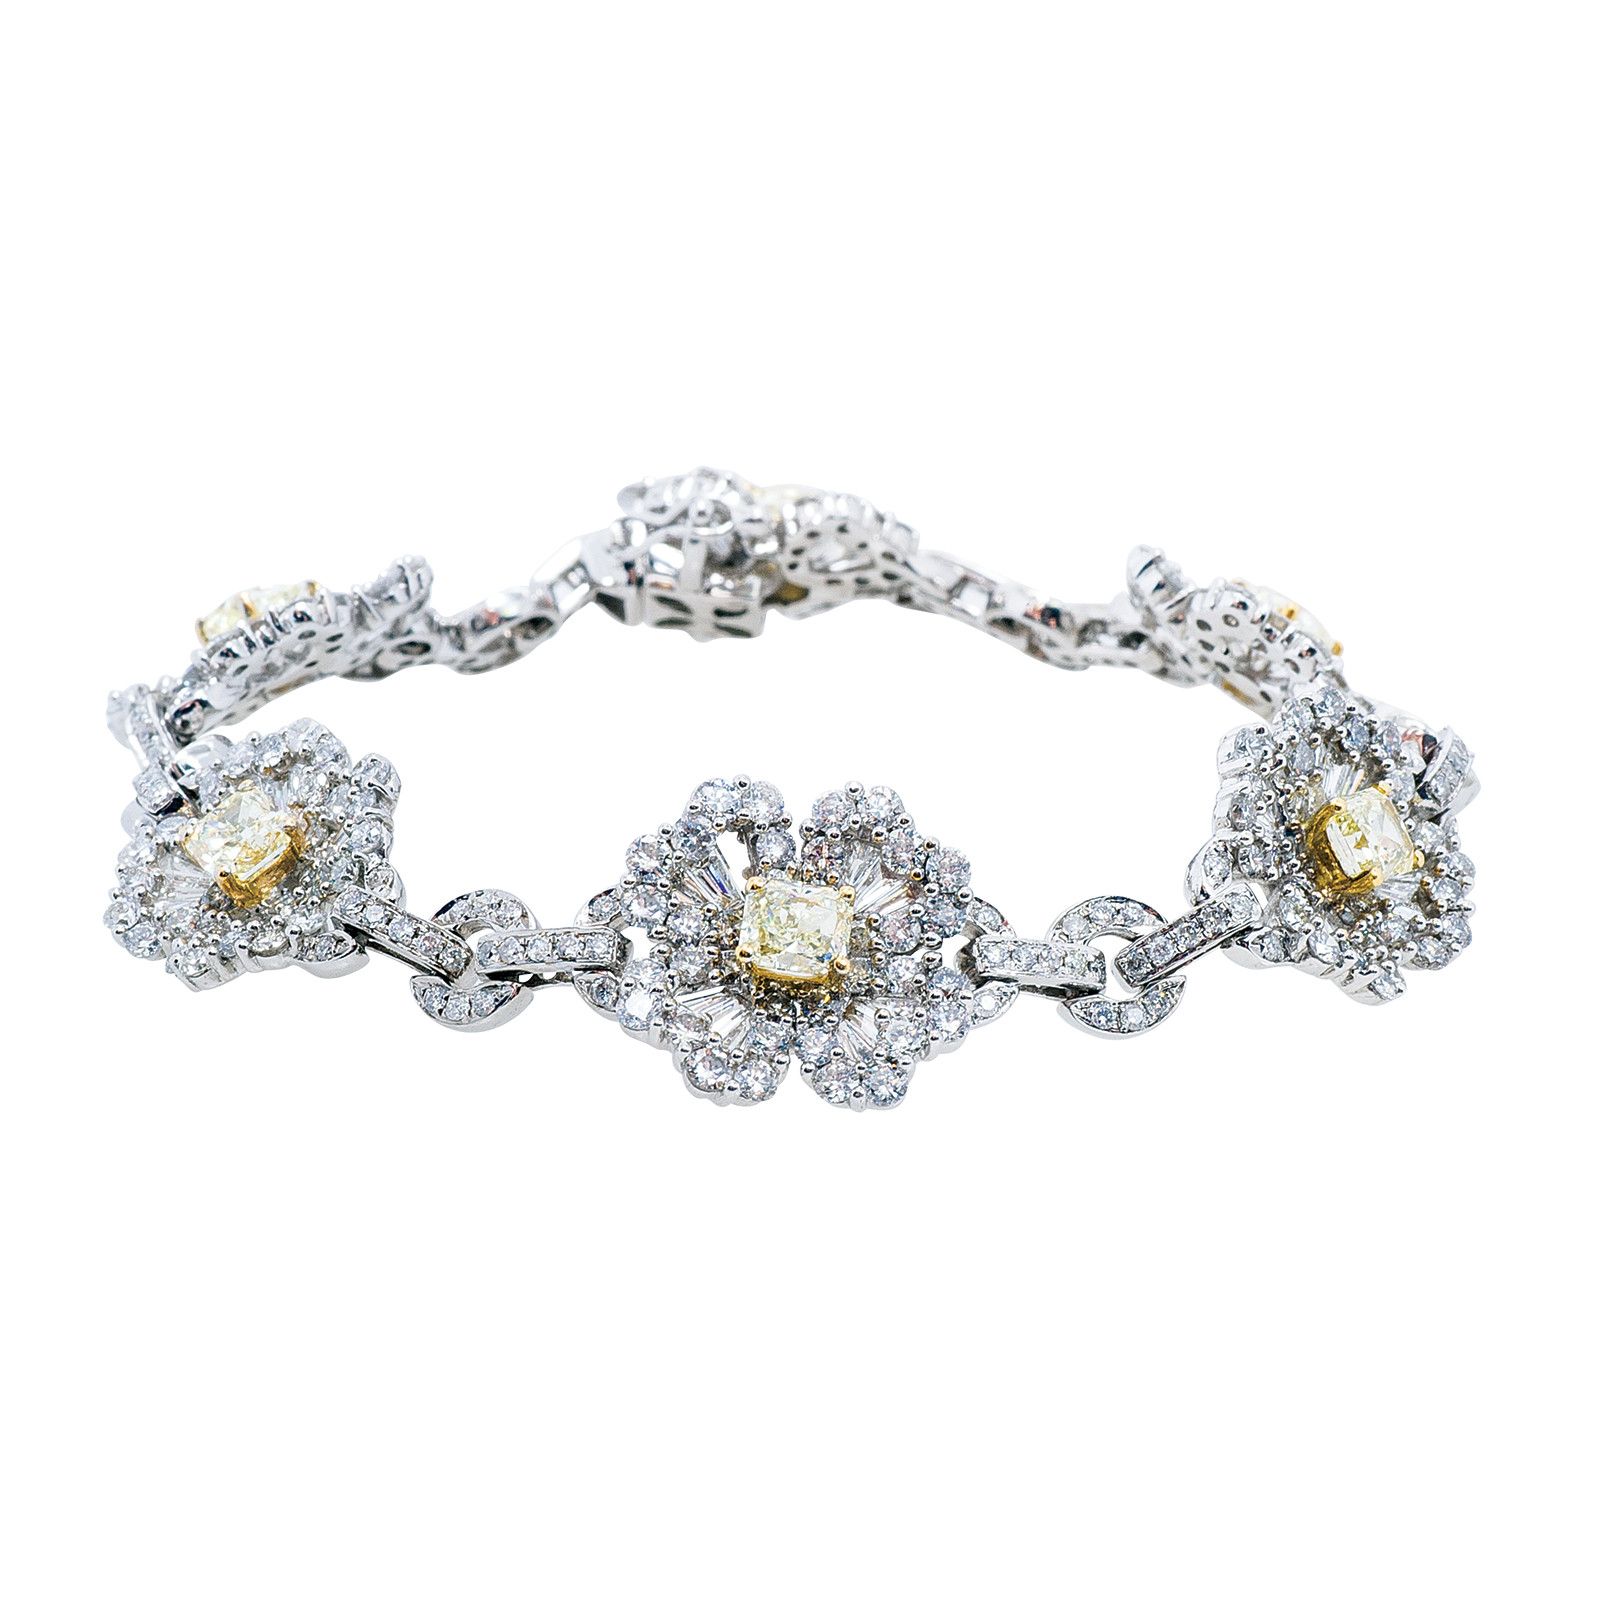 Vintage 8.91 CTW Fancy Yellow and White Diamond Flower Bracelet